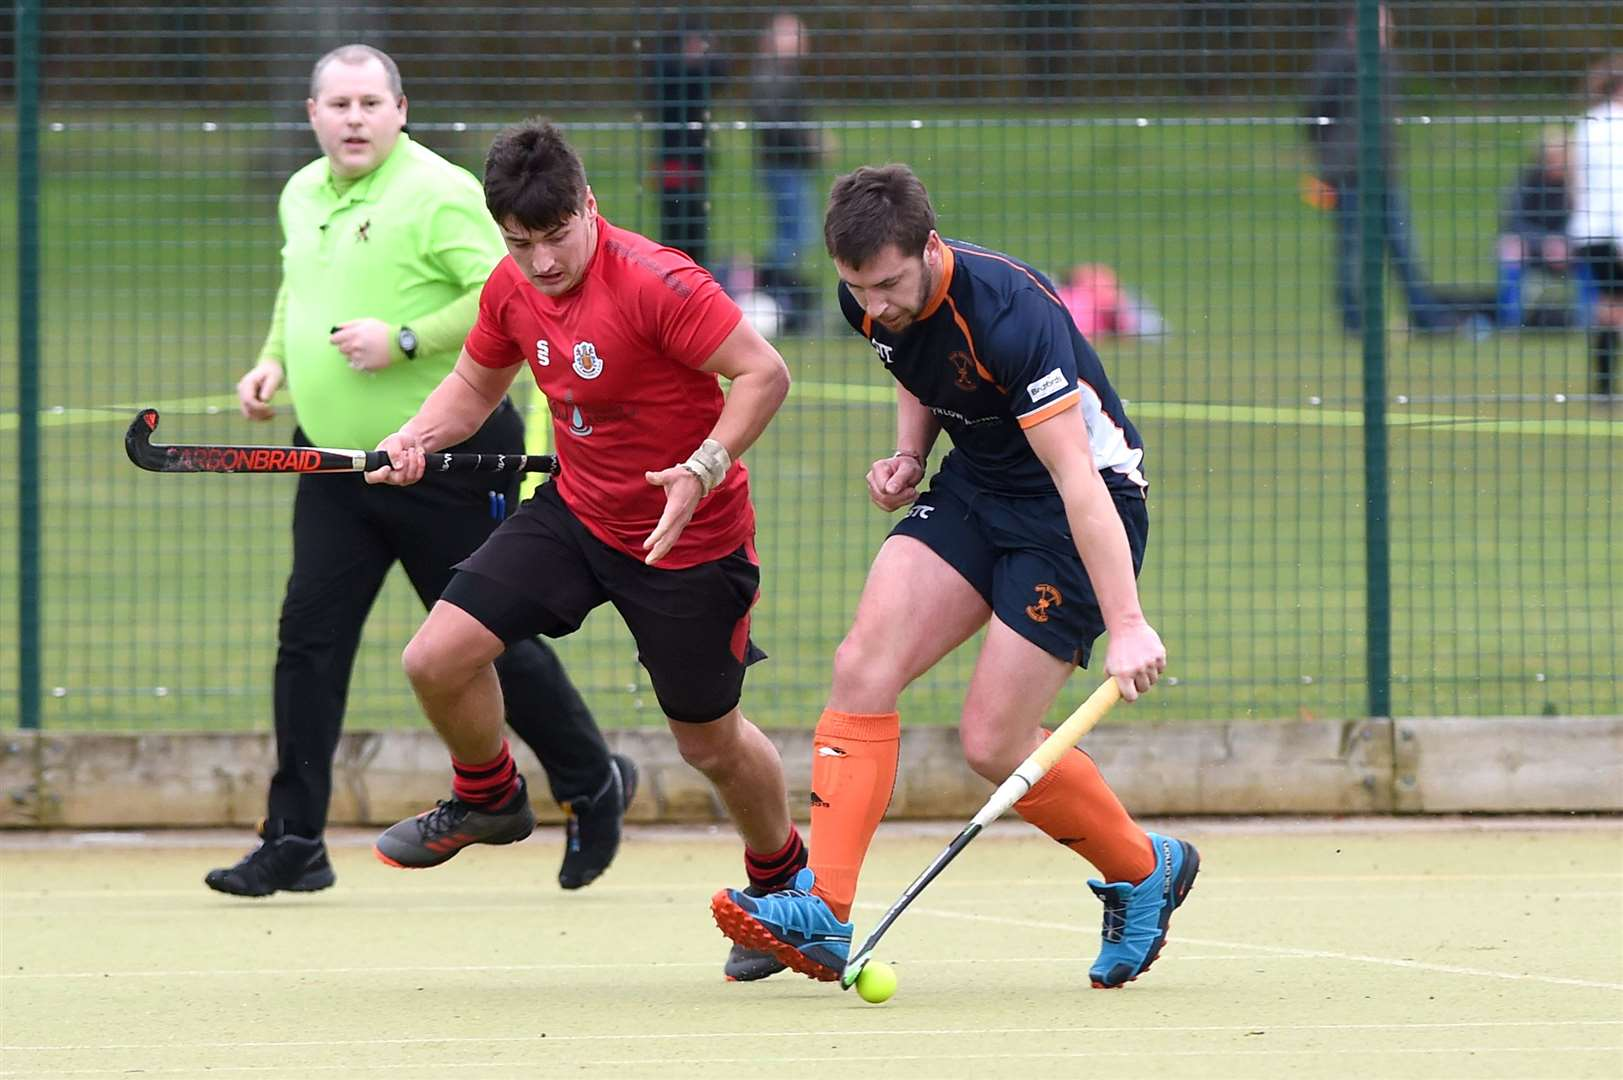 HOCKEY - Bury Men v Wisbech Town in recent action. PICTURE: Mecha Morton